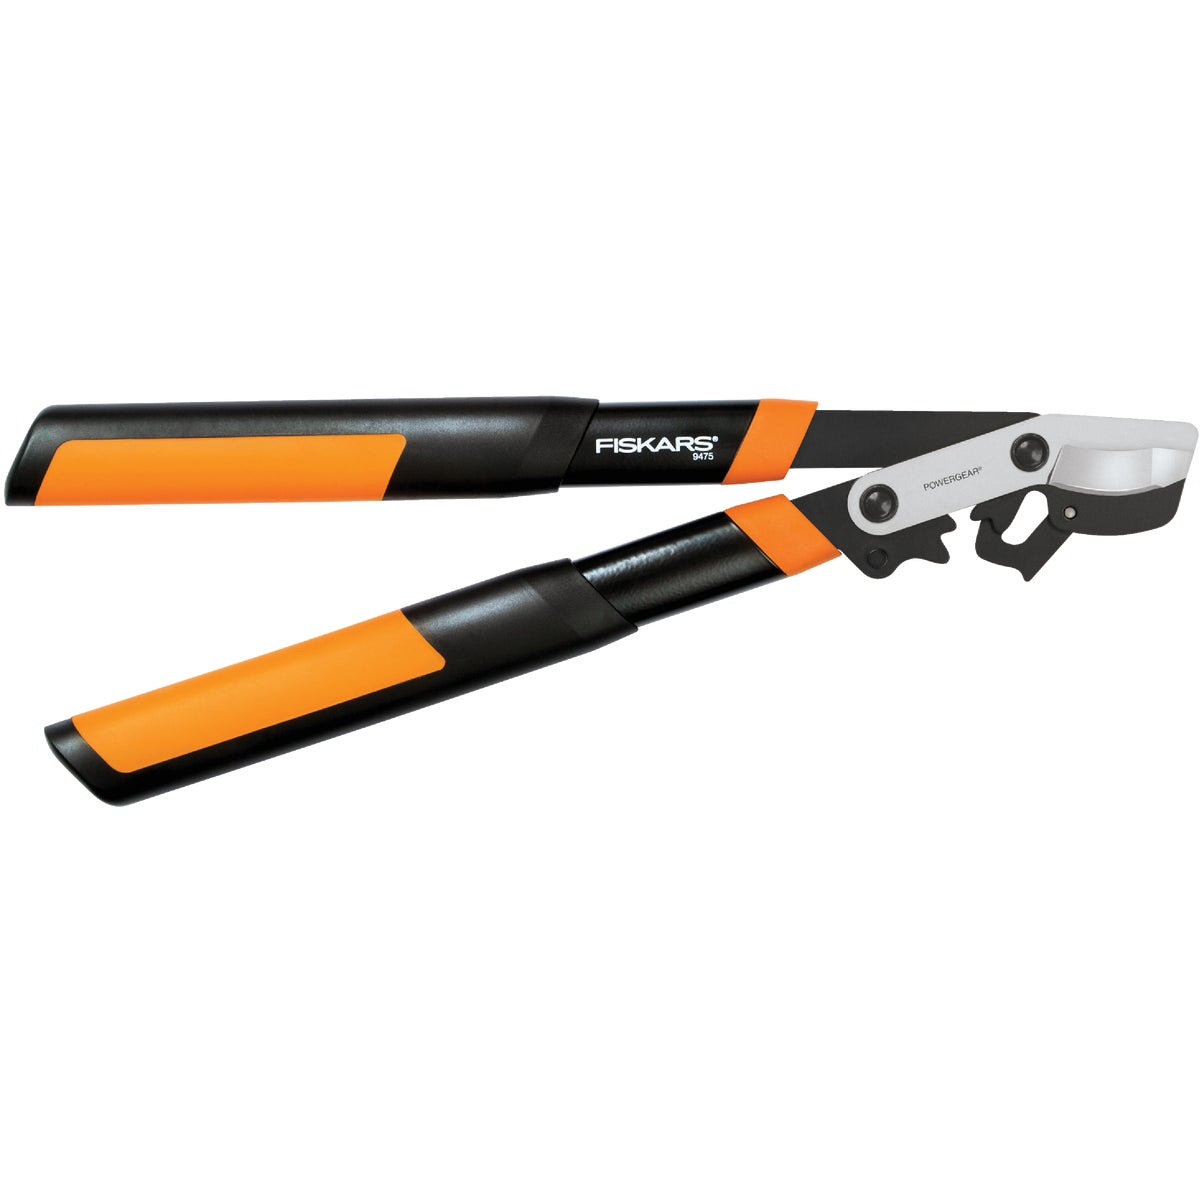 POWER GEAR BYPASS LOPPER - 96276935 by Fiskars